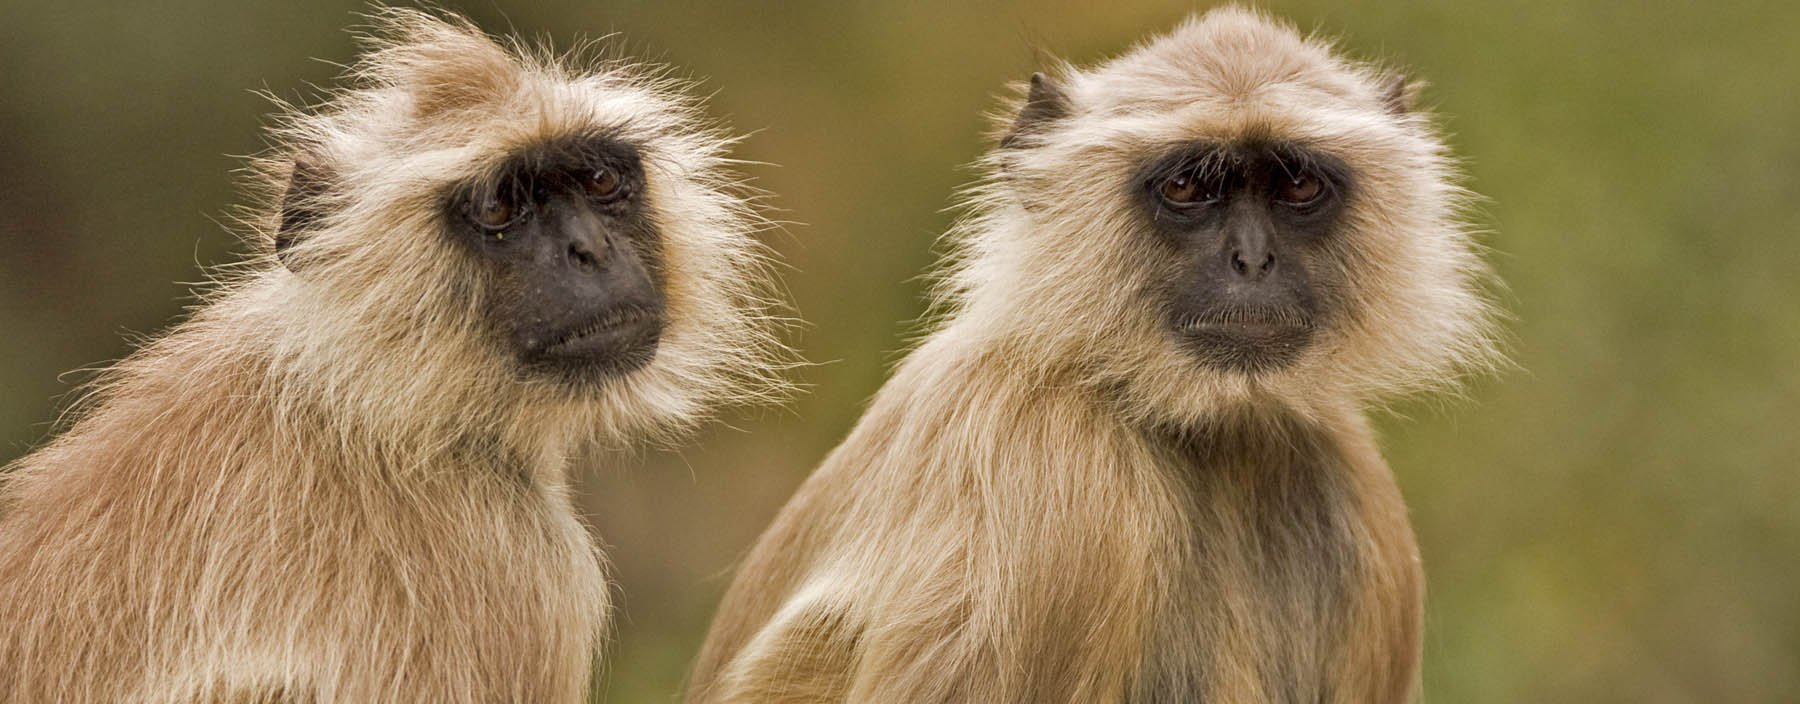 in, ranthambore, two langurs.jpg